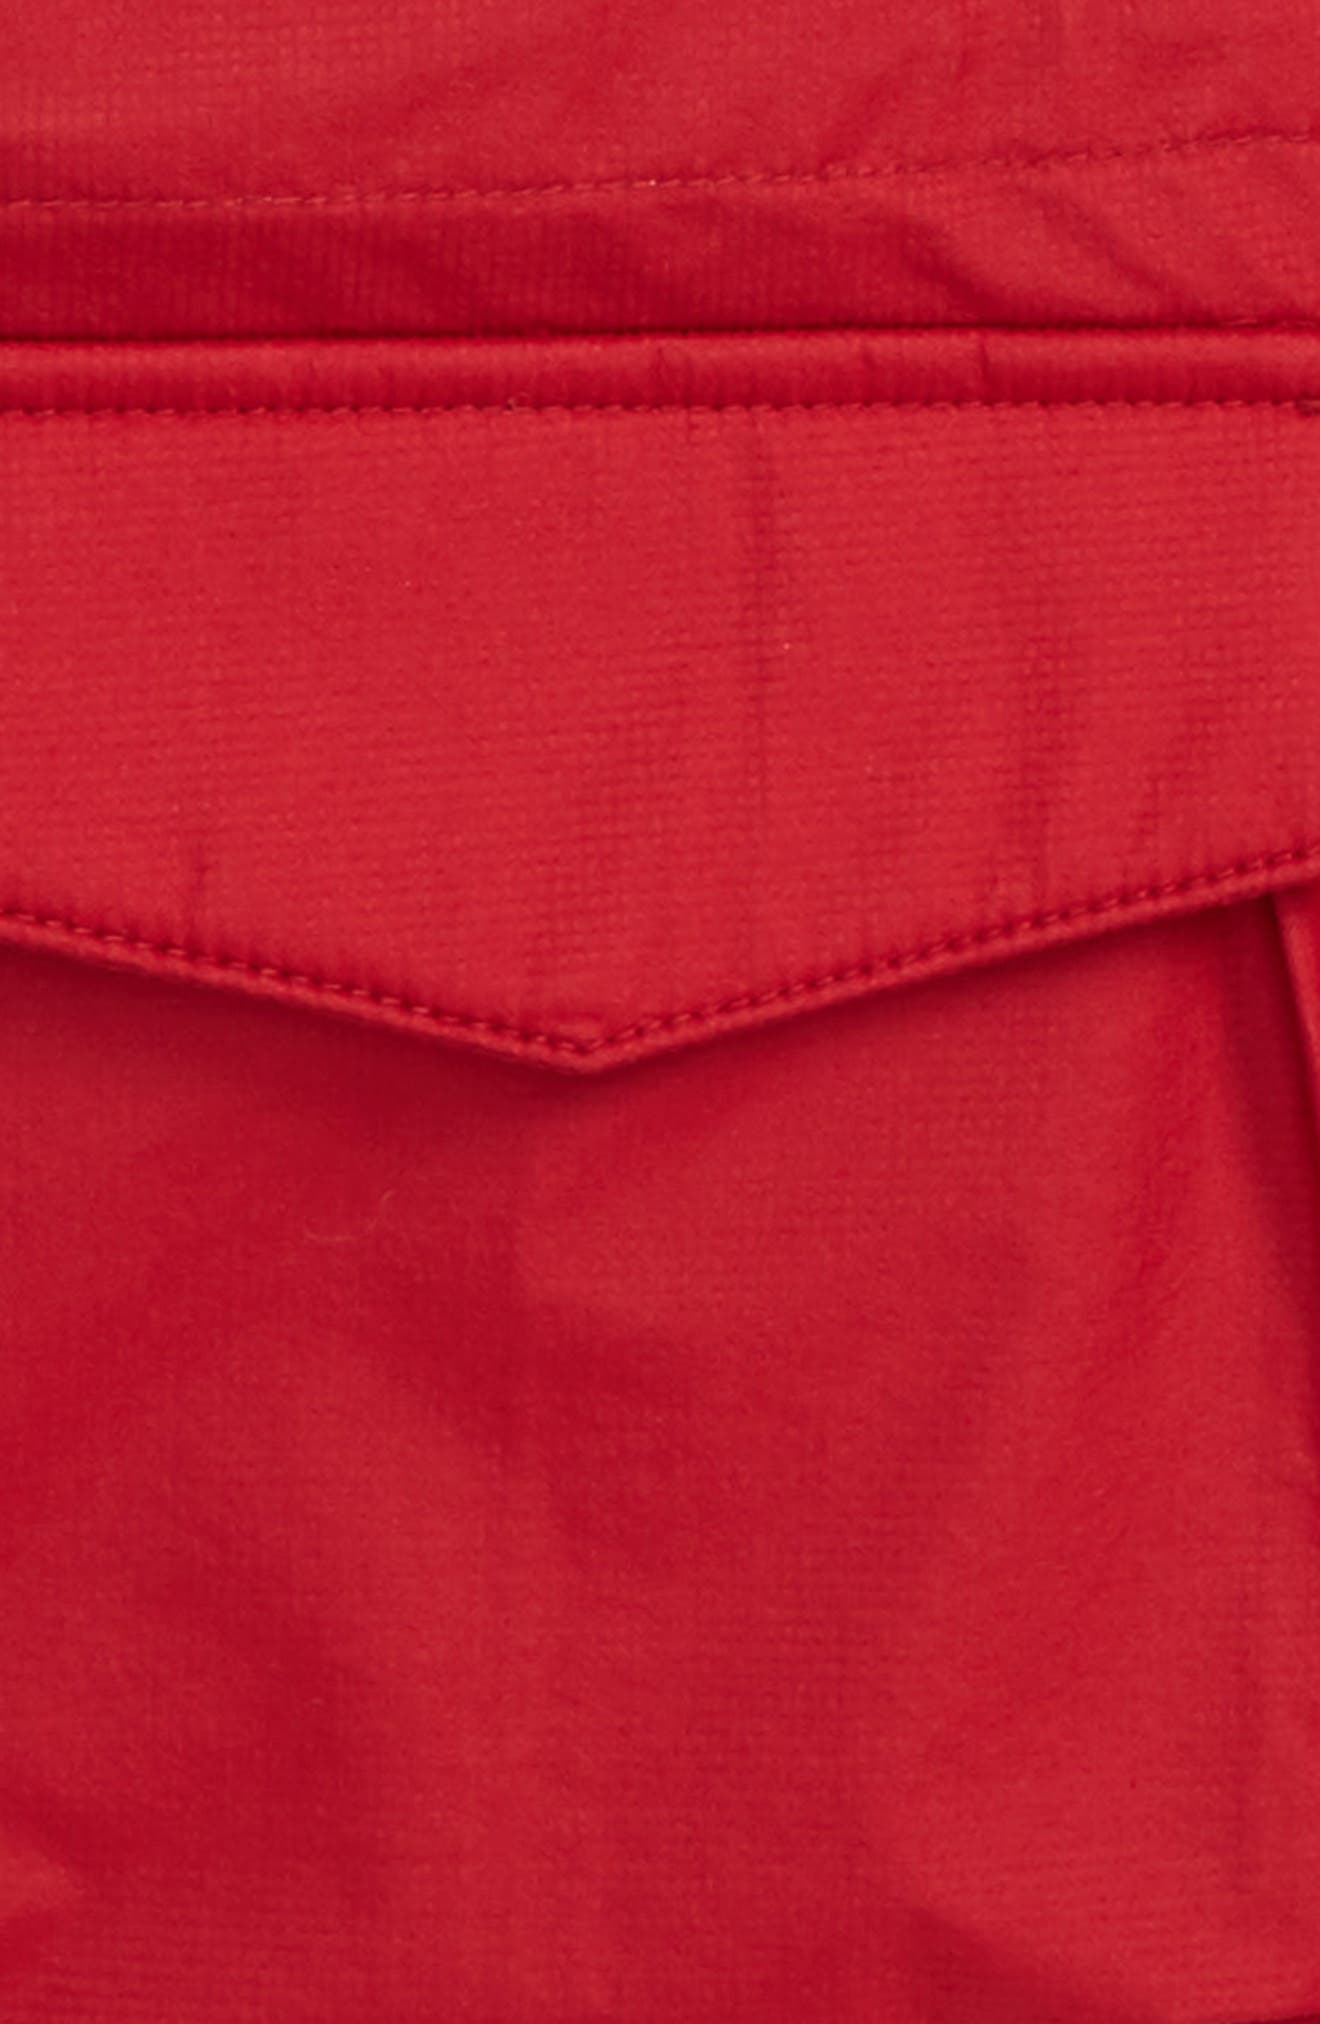 Terrick 3-in-1 Jacket,                             Alternate thumbnail 2, color,                             Parade Red